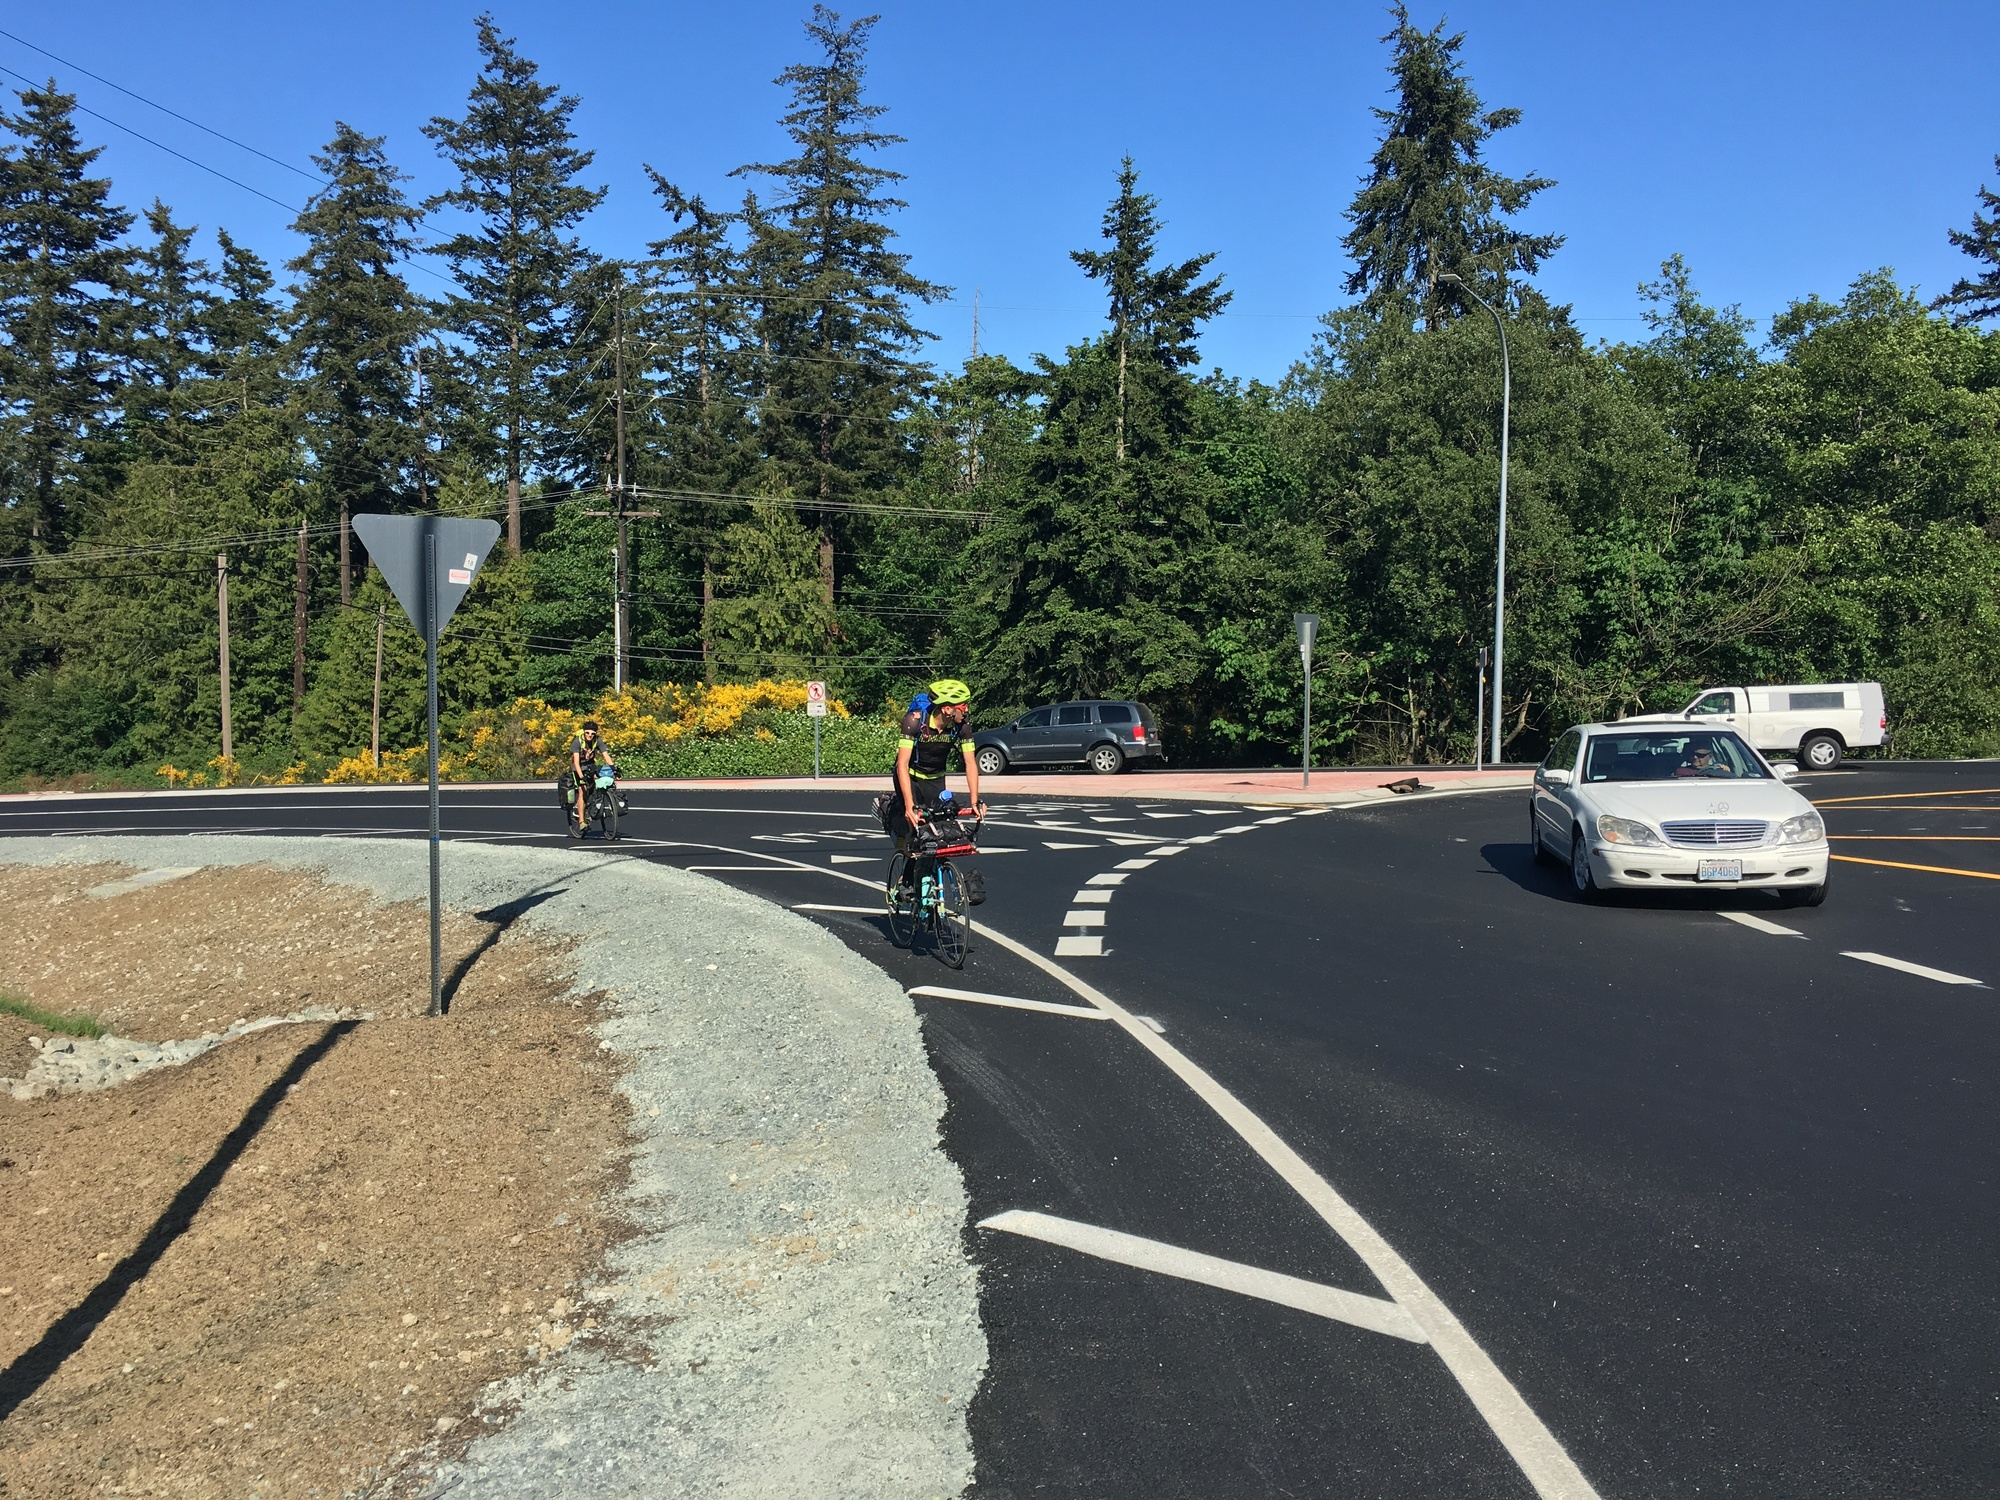 Cyclists use the SR 20 and Miller/Gibralter roads roundabout in Skagit County